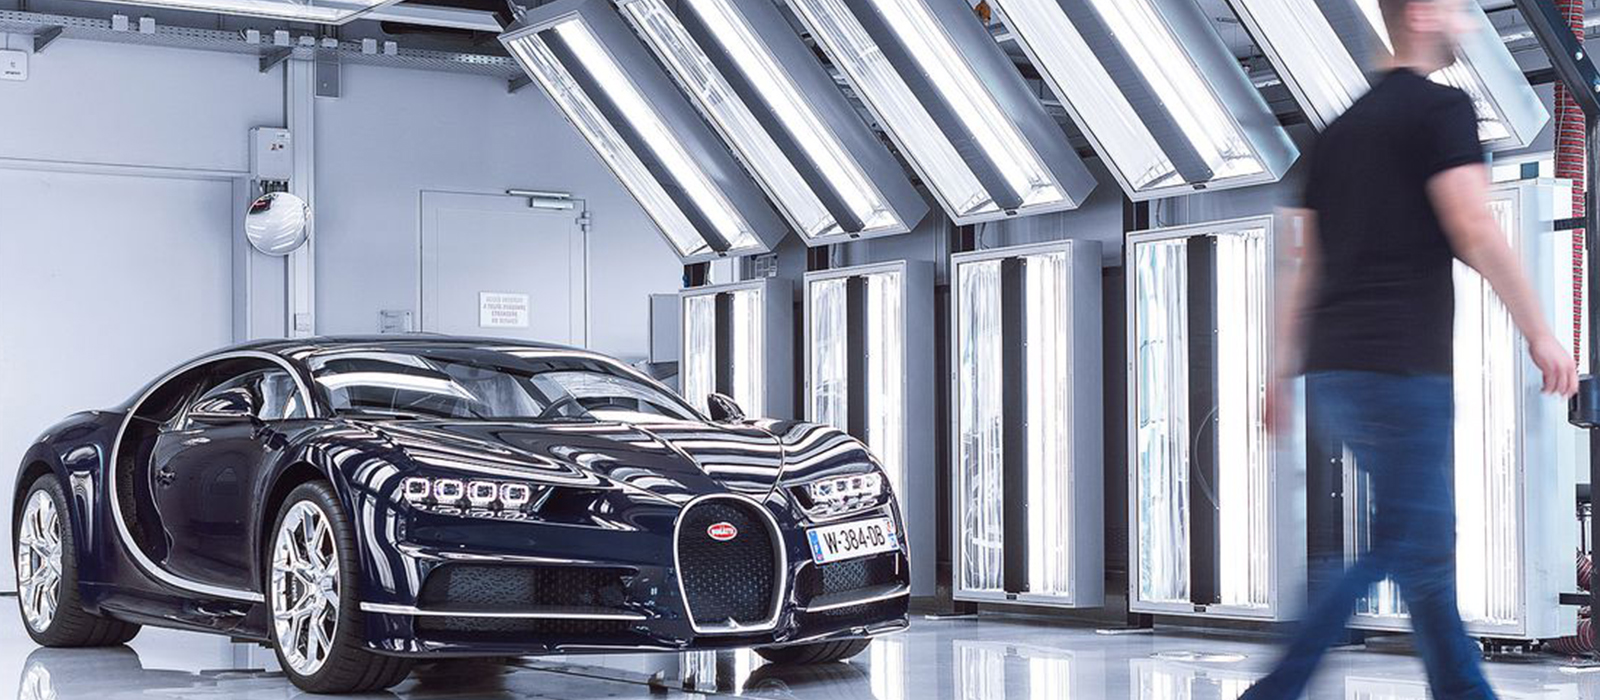 Bugatti Chiron: Breaking new dimensions… But who should insure it?